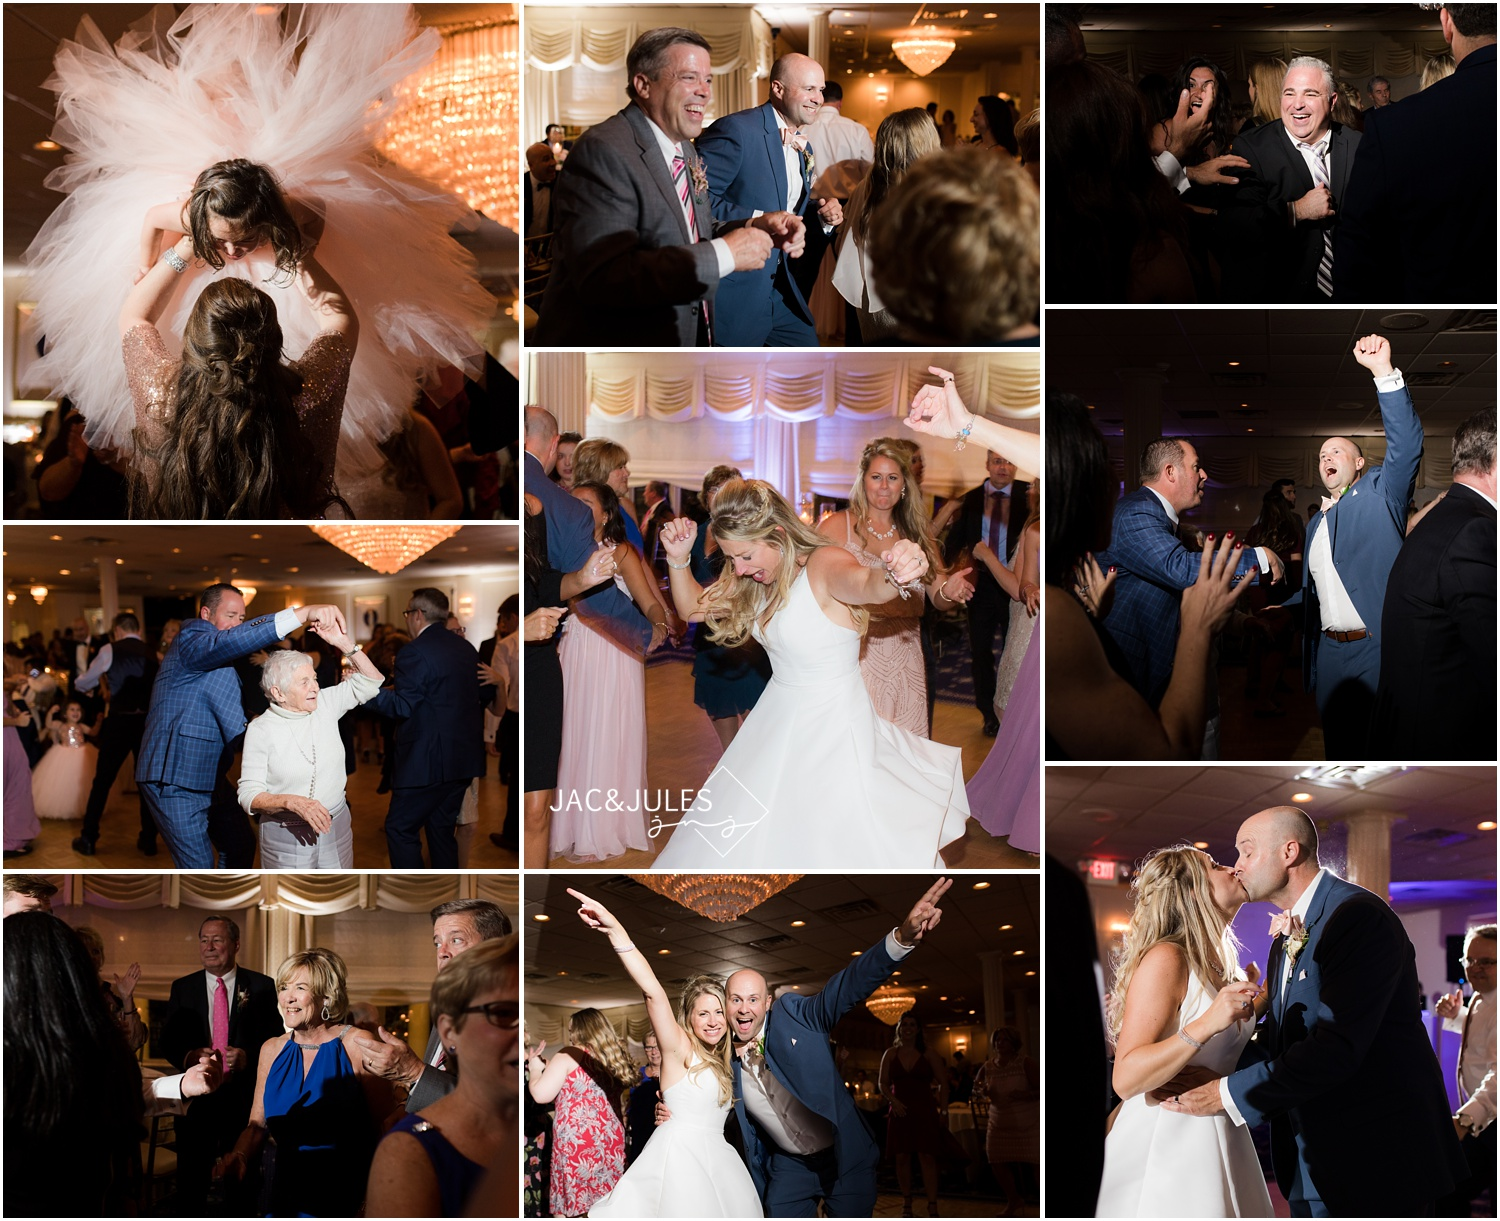 Fun and dancing during a wedding reception at The Breakers in Spring Lake.